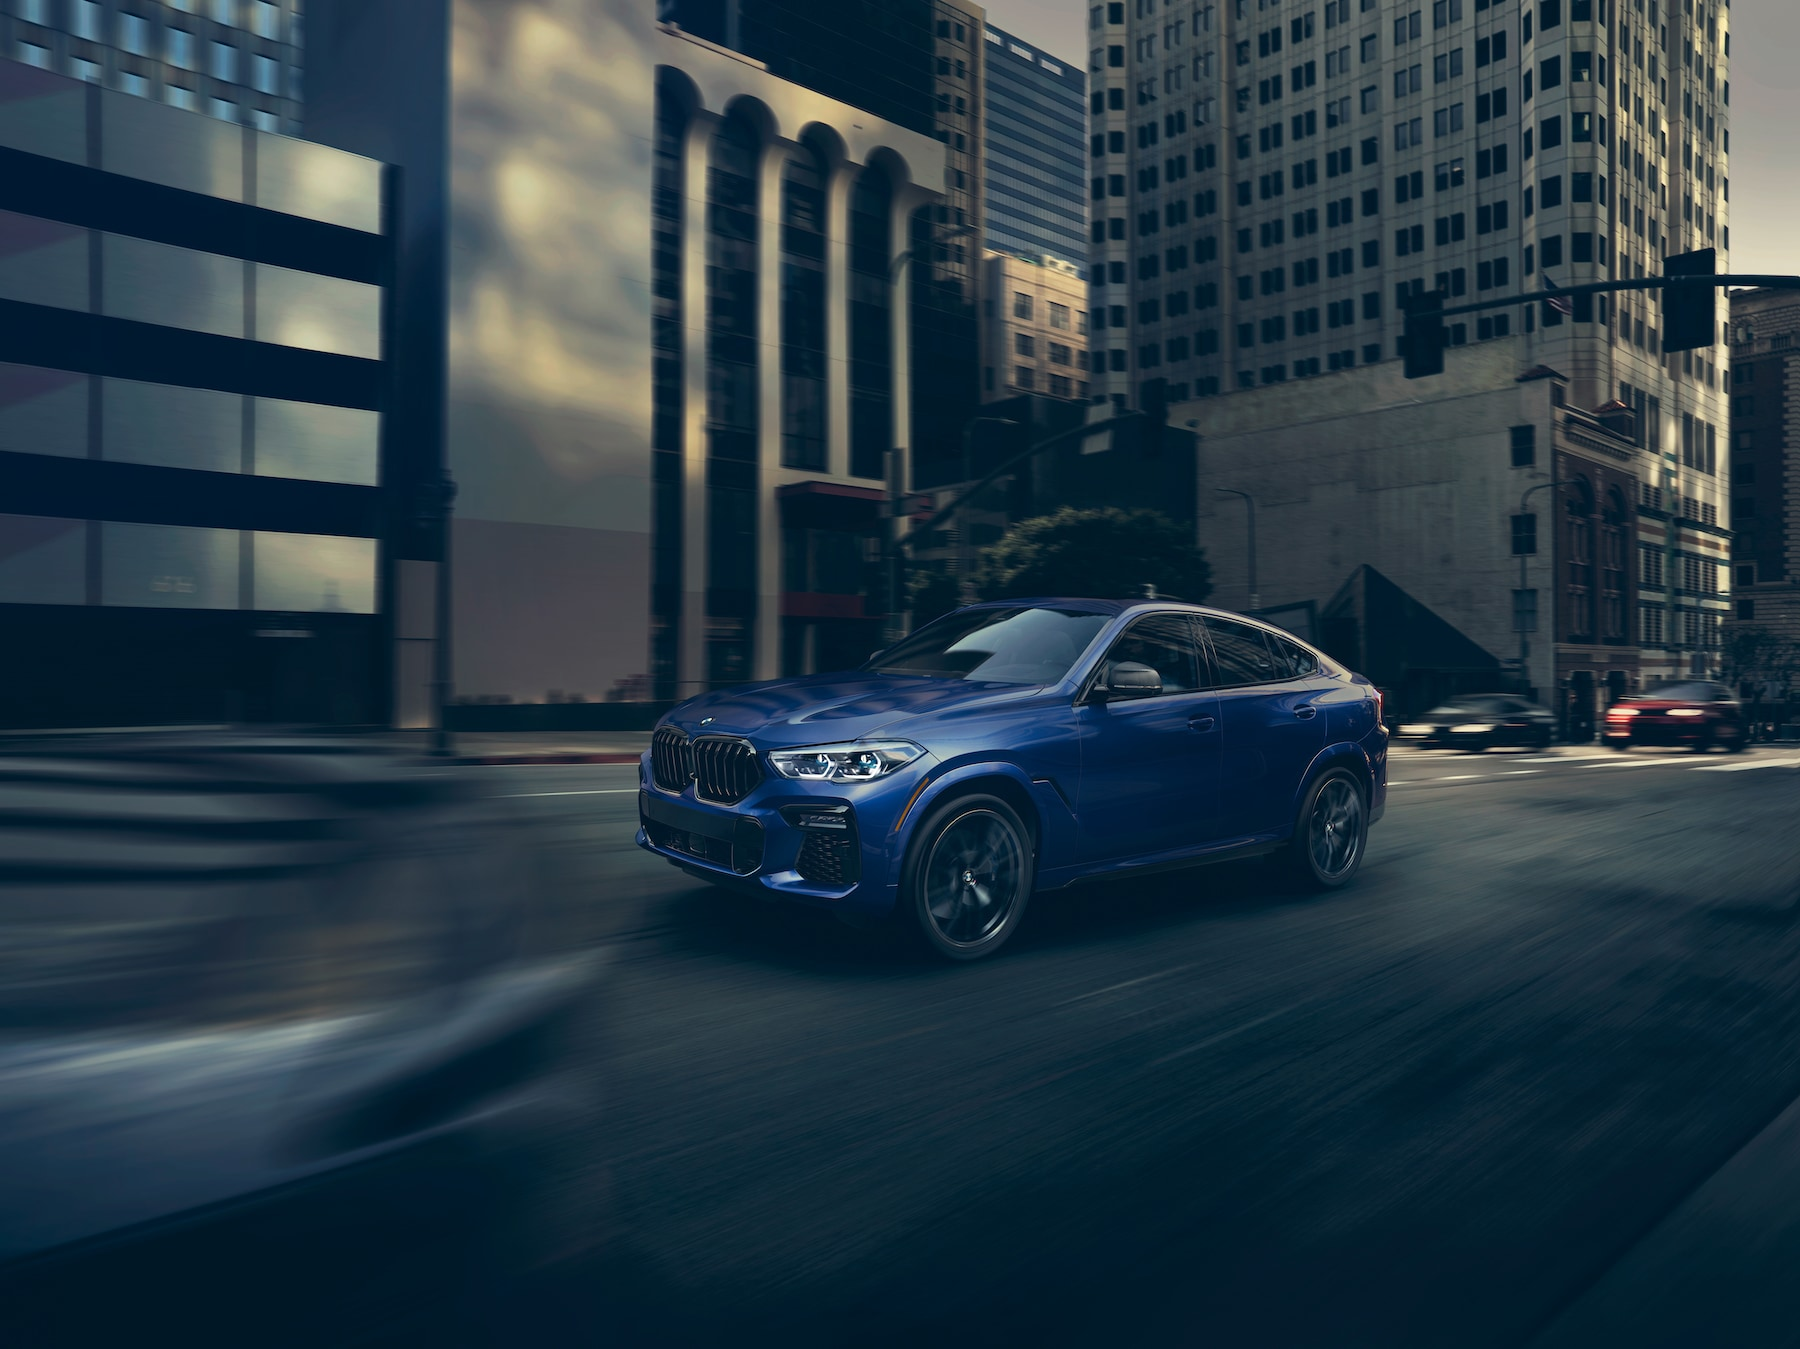 Model features of the 2020 X7 at BMW of Rockville | Blue 2020 BMW X6 running on road